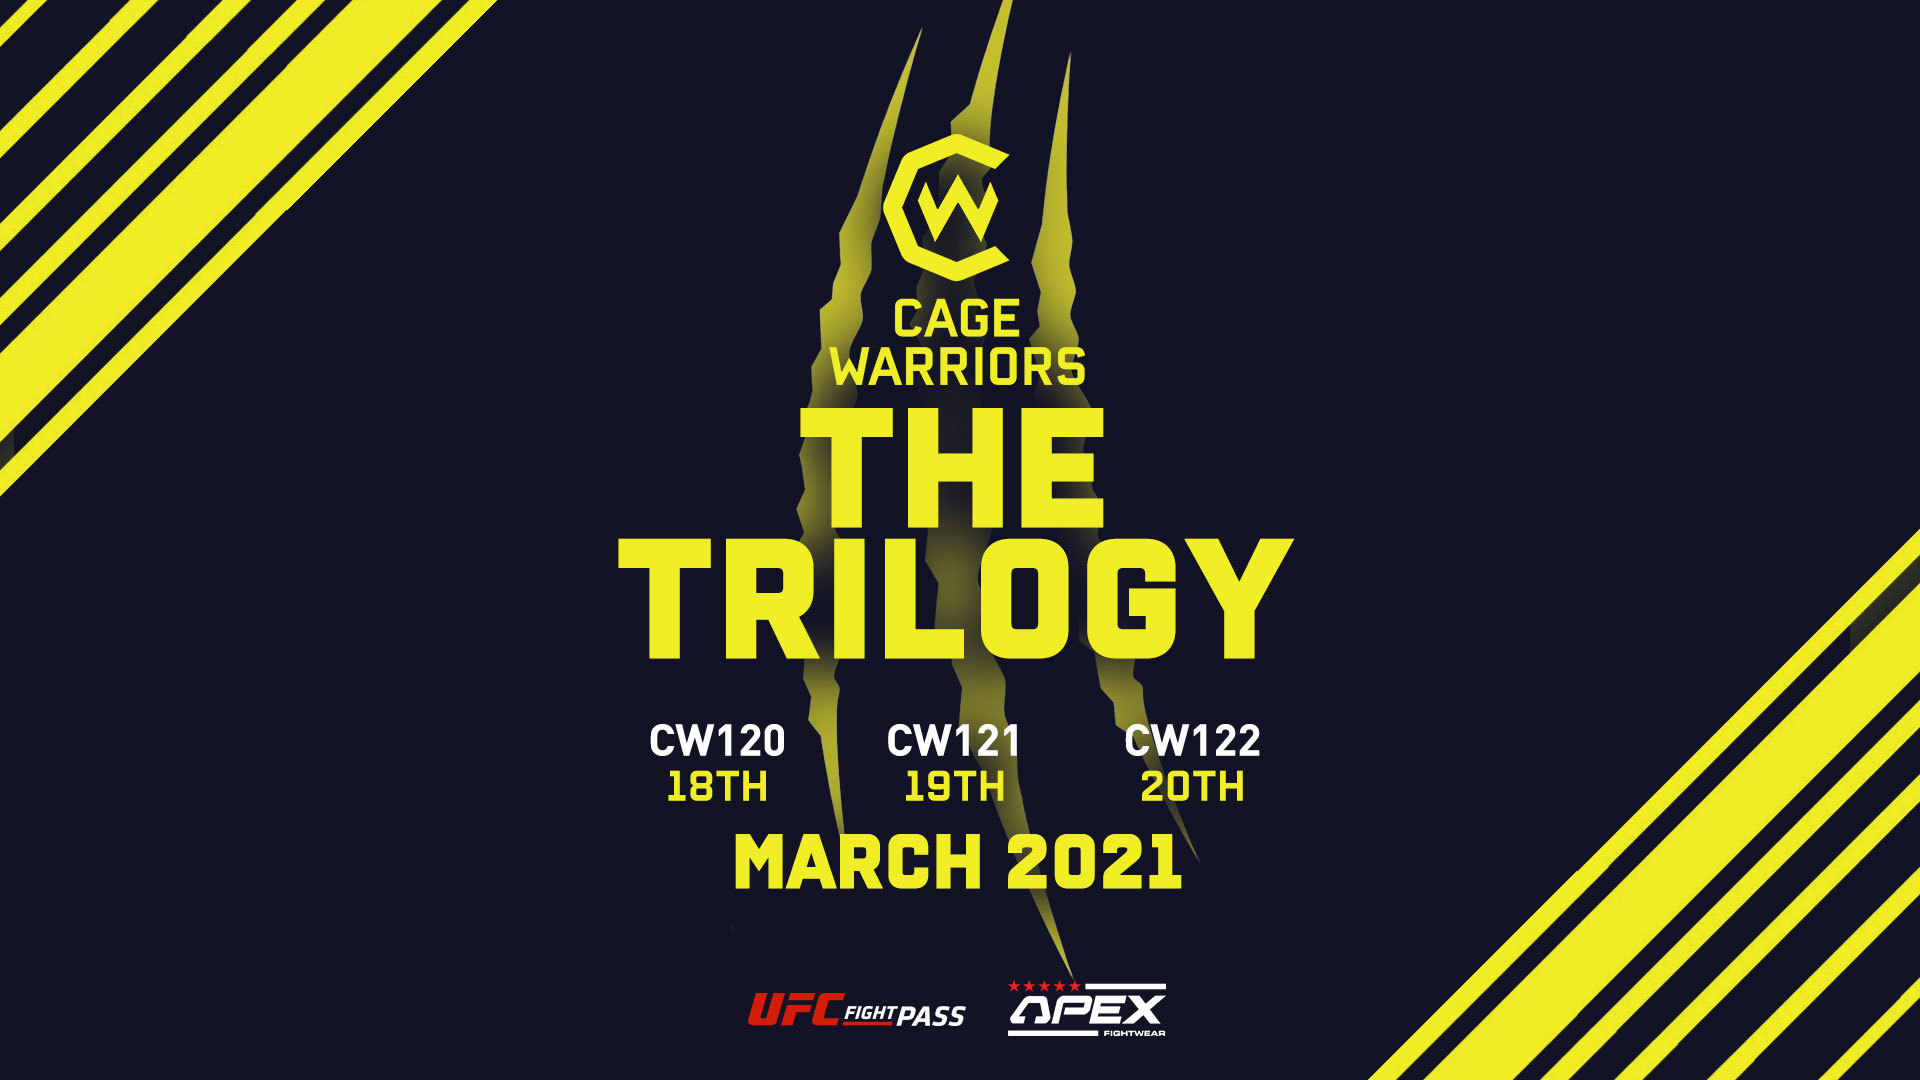 Cage Warriors next fight